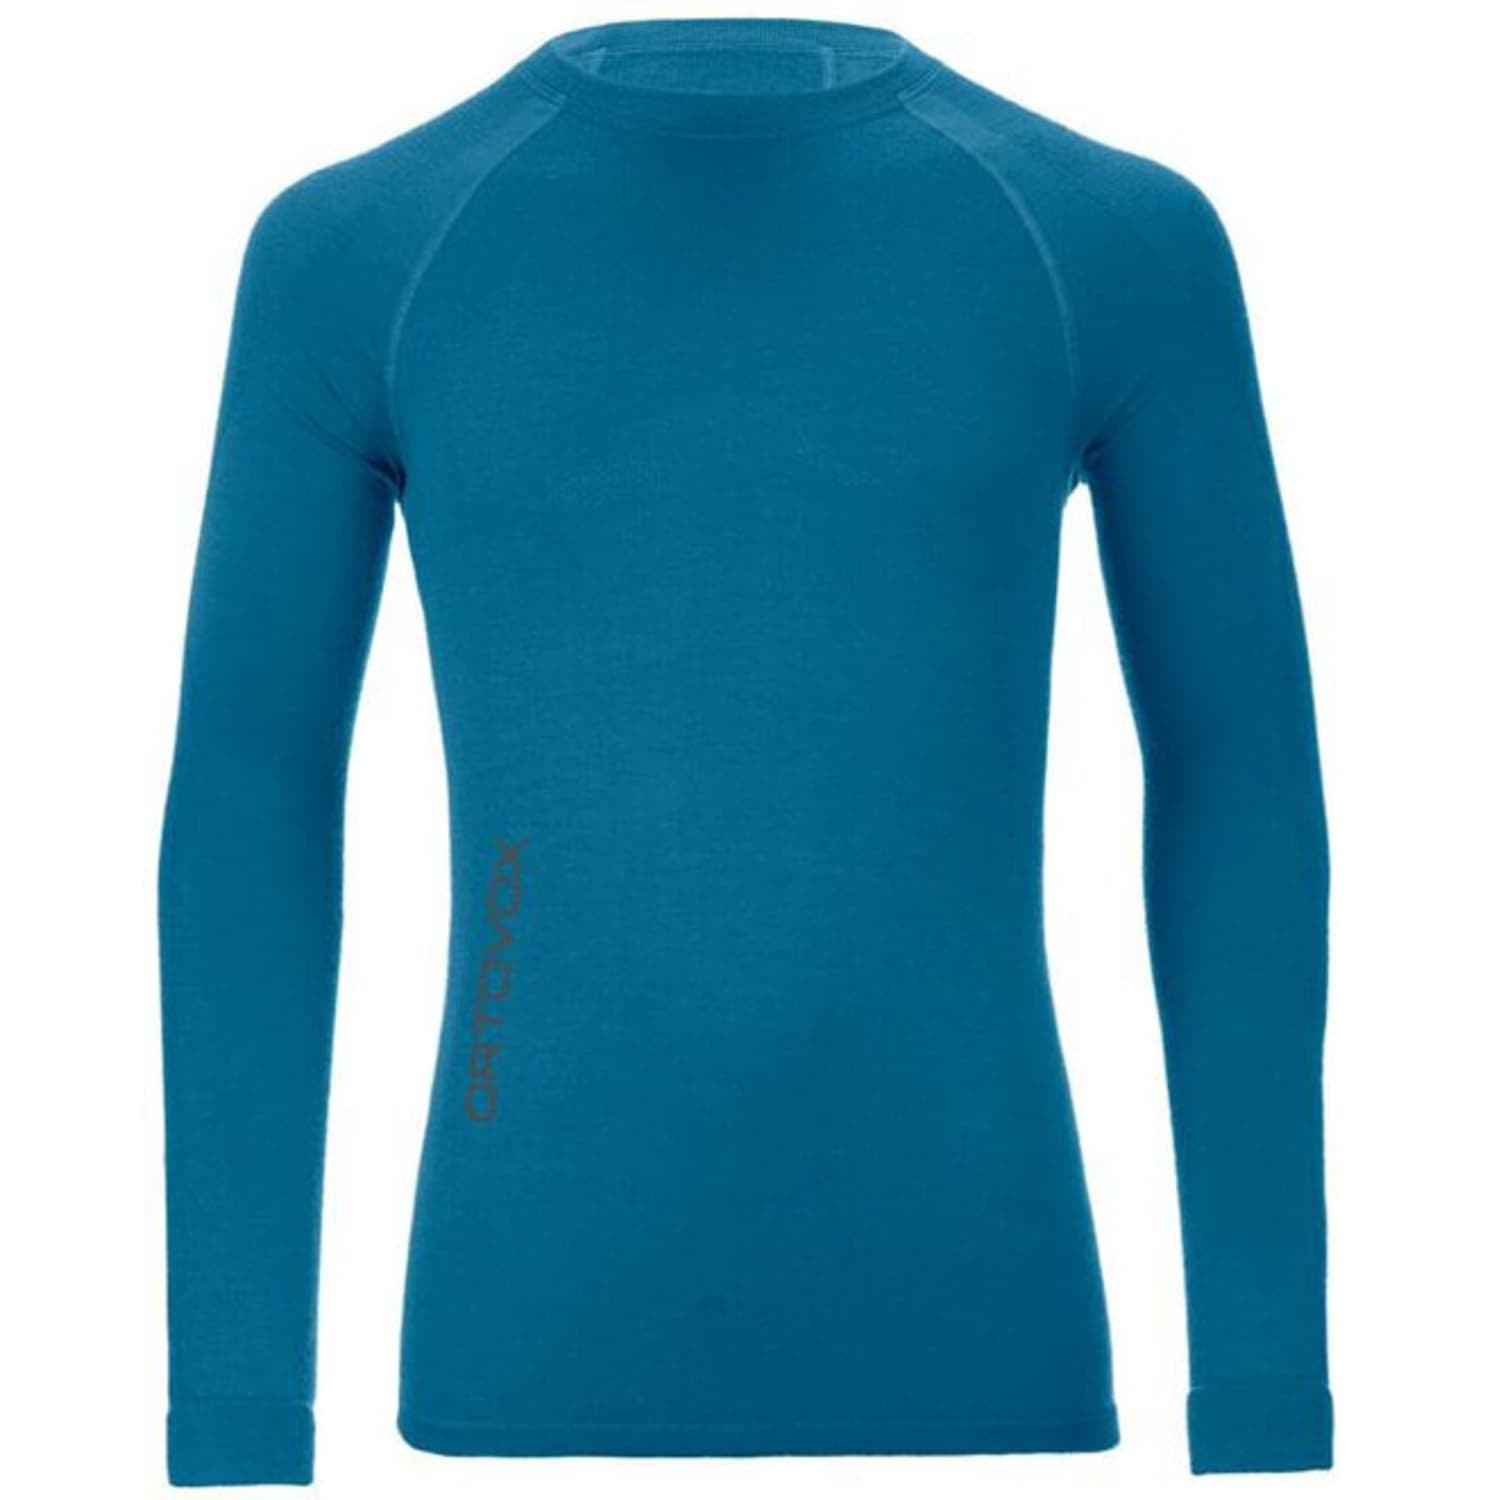 Merino 230 Competition LS Men